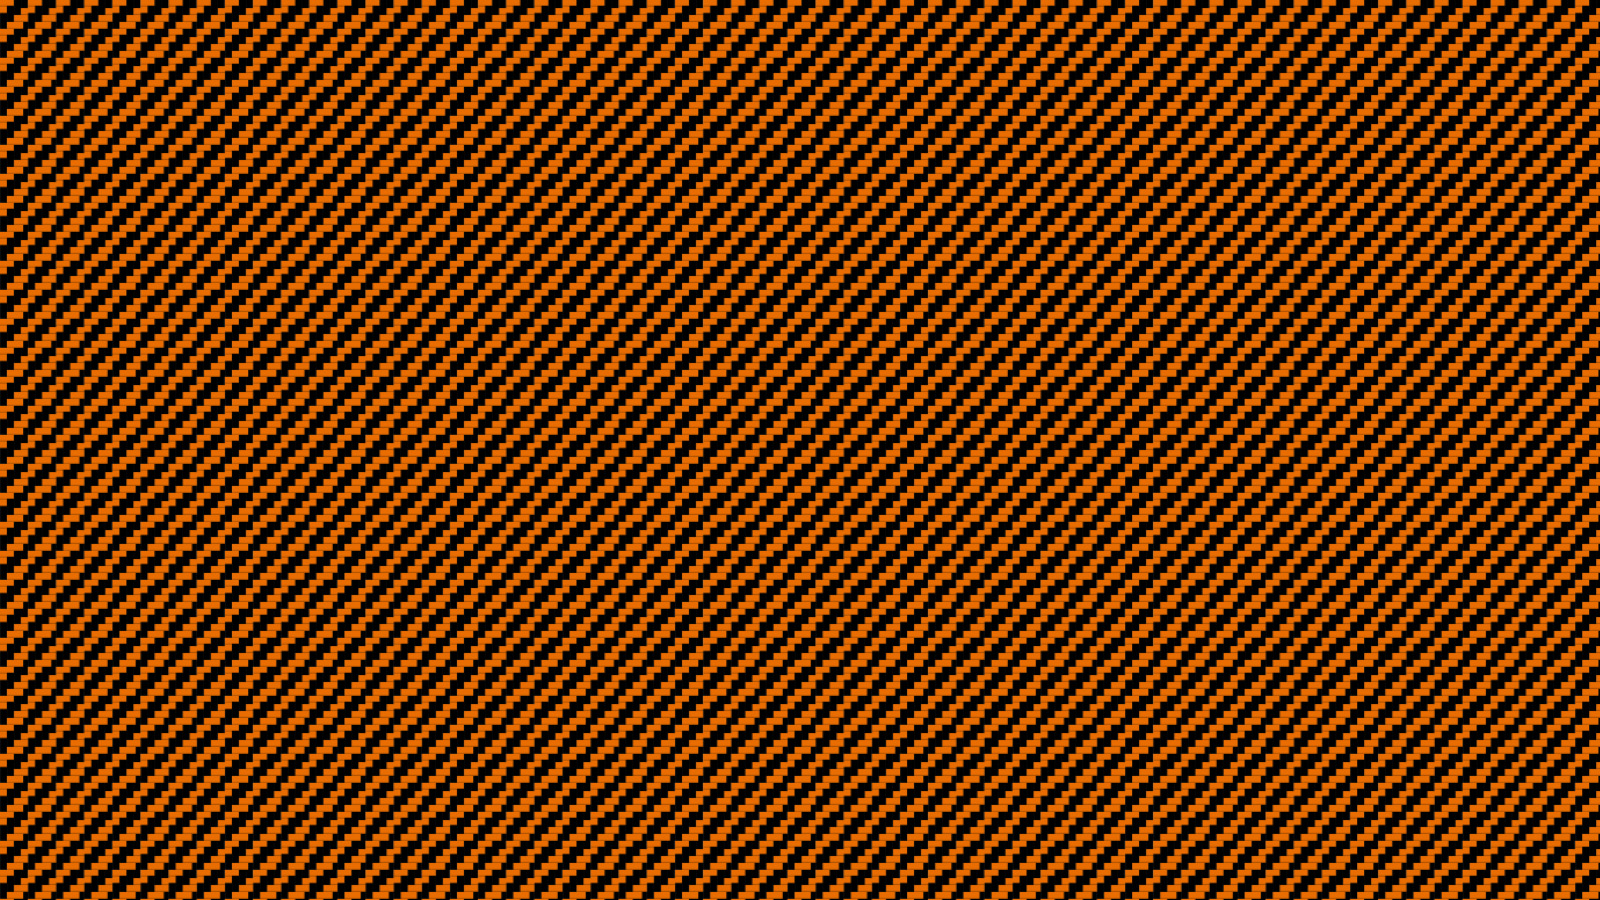 Orange Carbon Fiber Wallpaper - WallpaperSafari